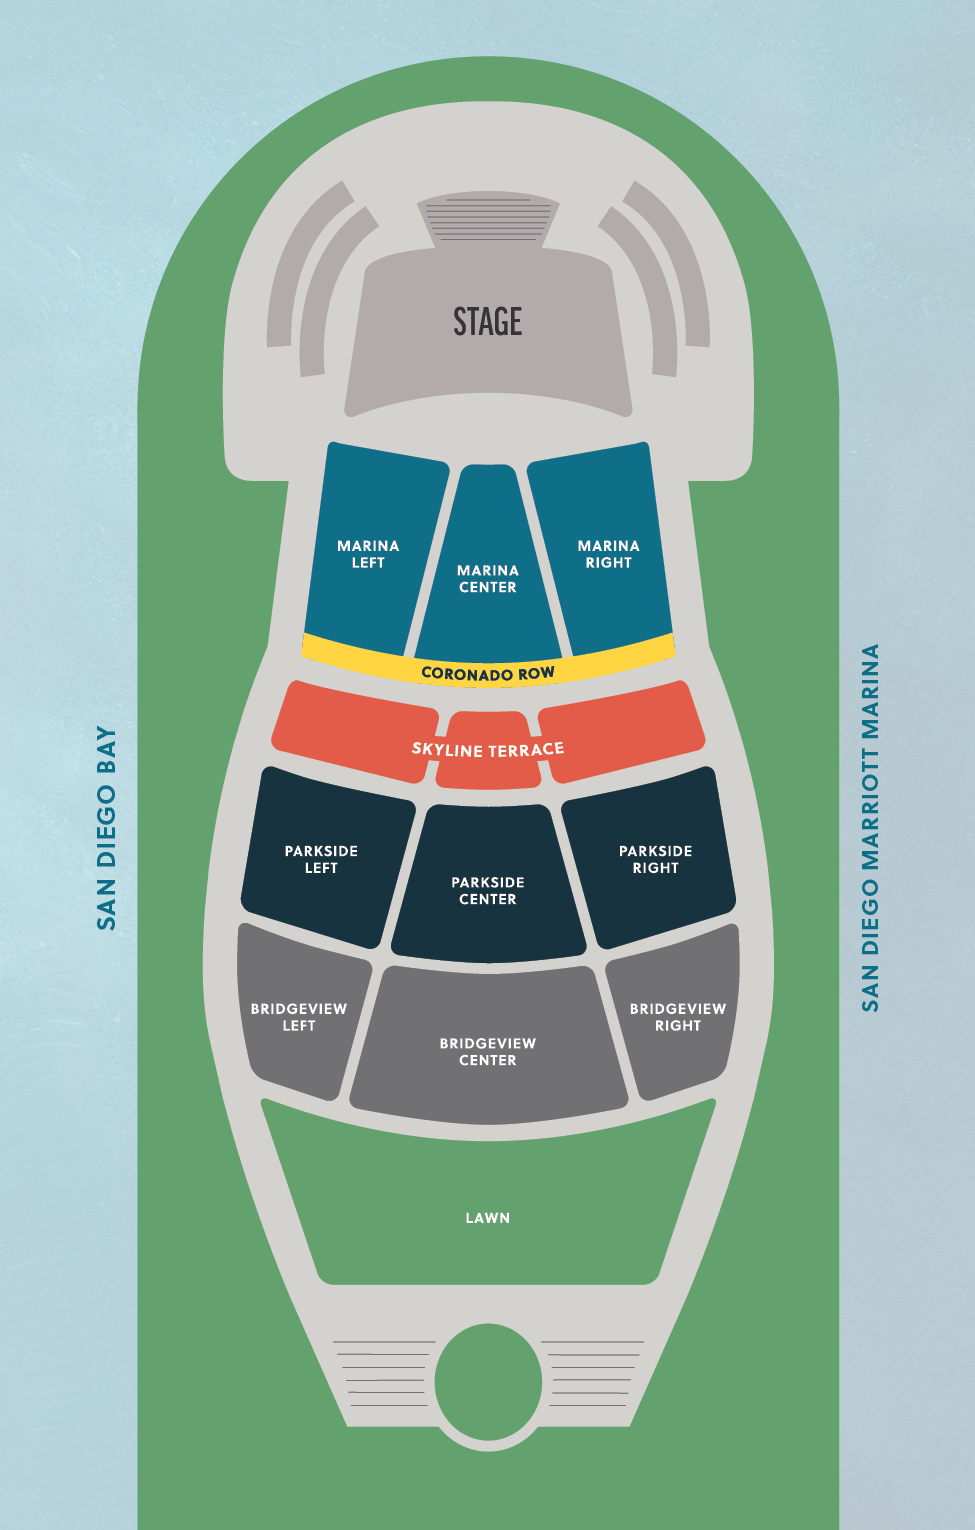 Map of seating arrangement of new Bayside Performance Park